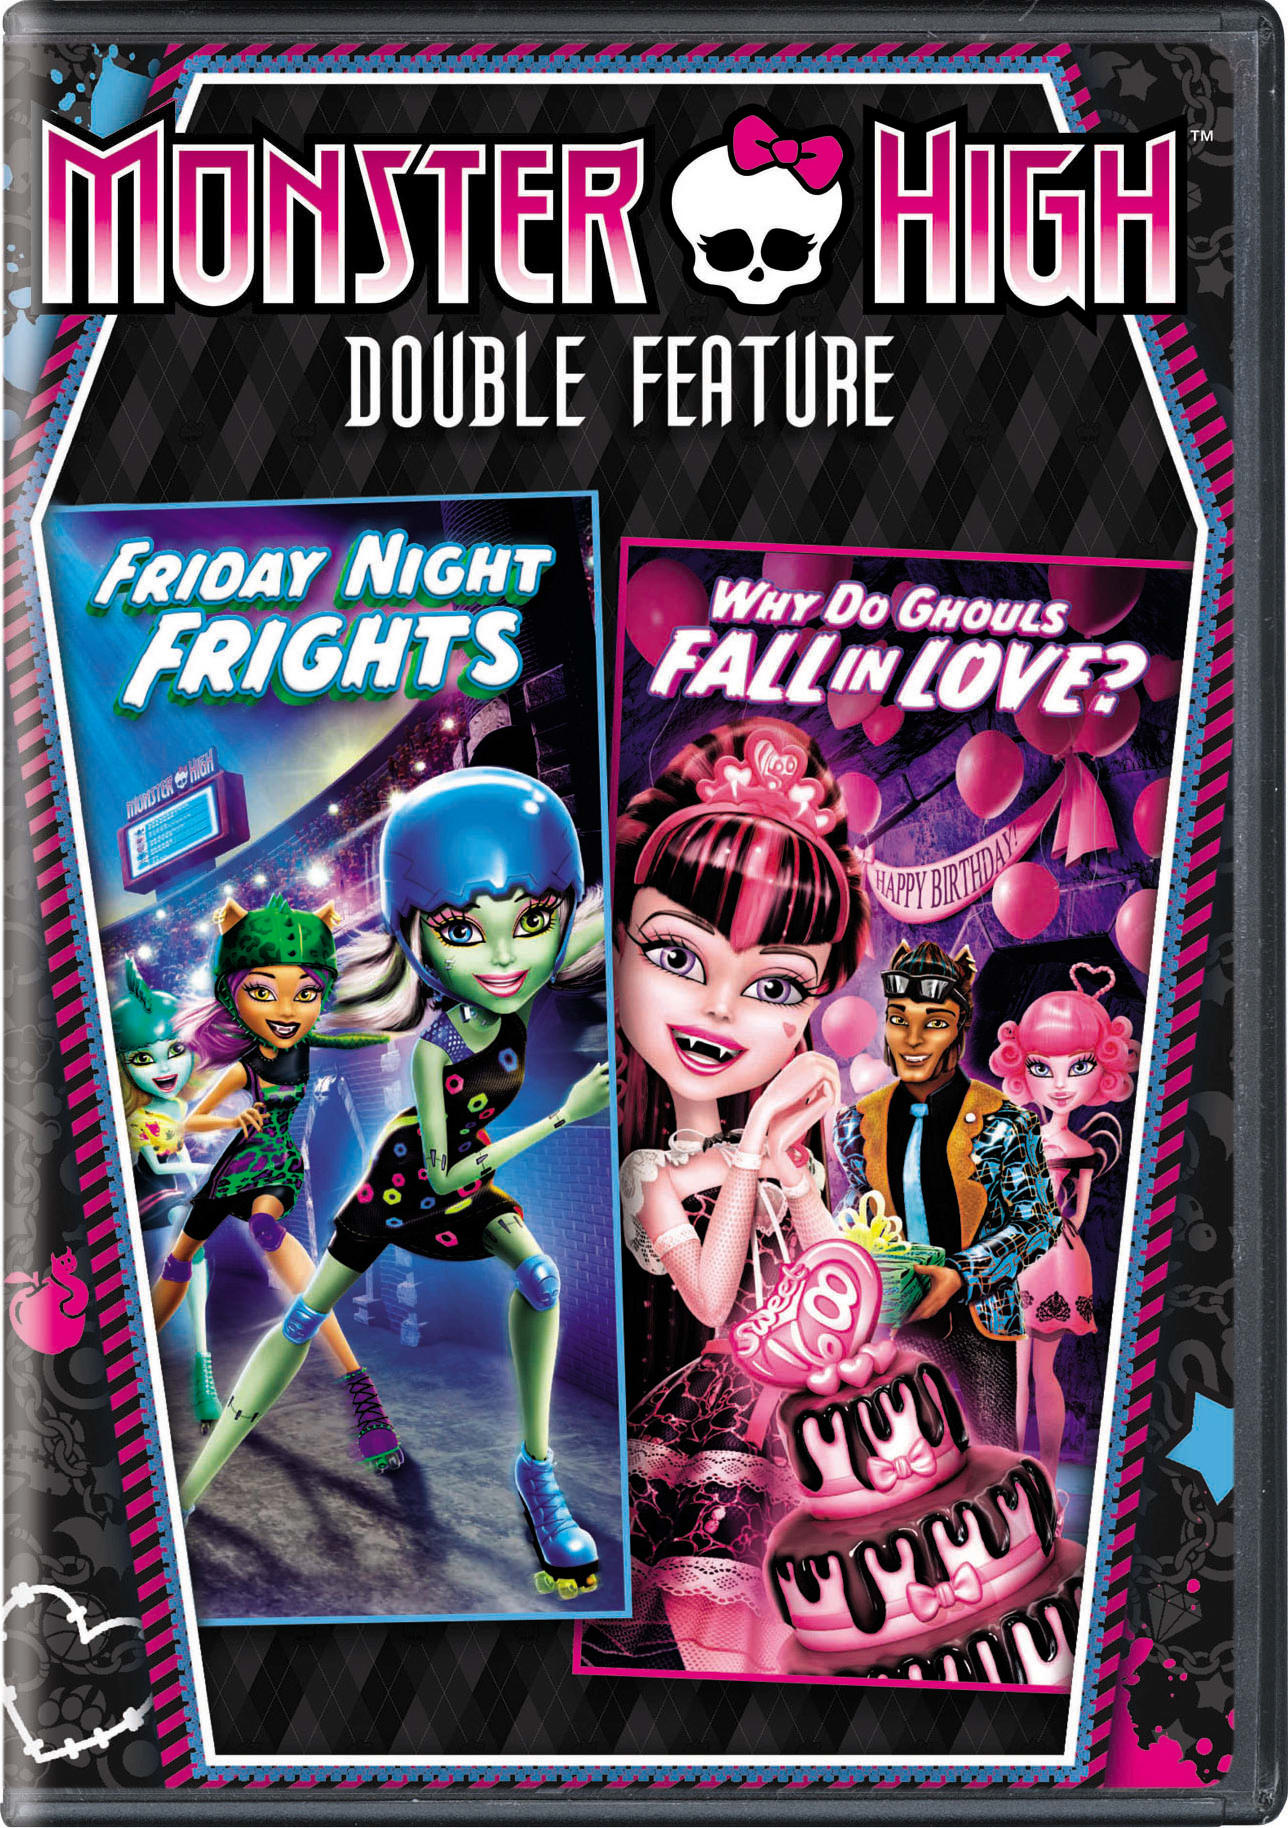 Monster High: Friday Night Frights/Why Do Ghouls Fall in Love? [DVD]